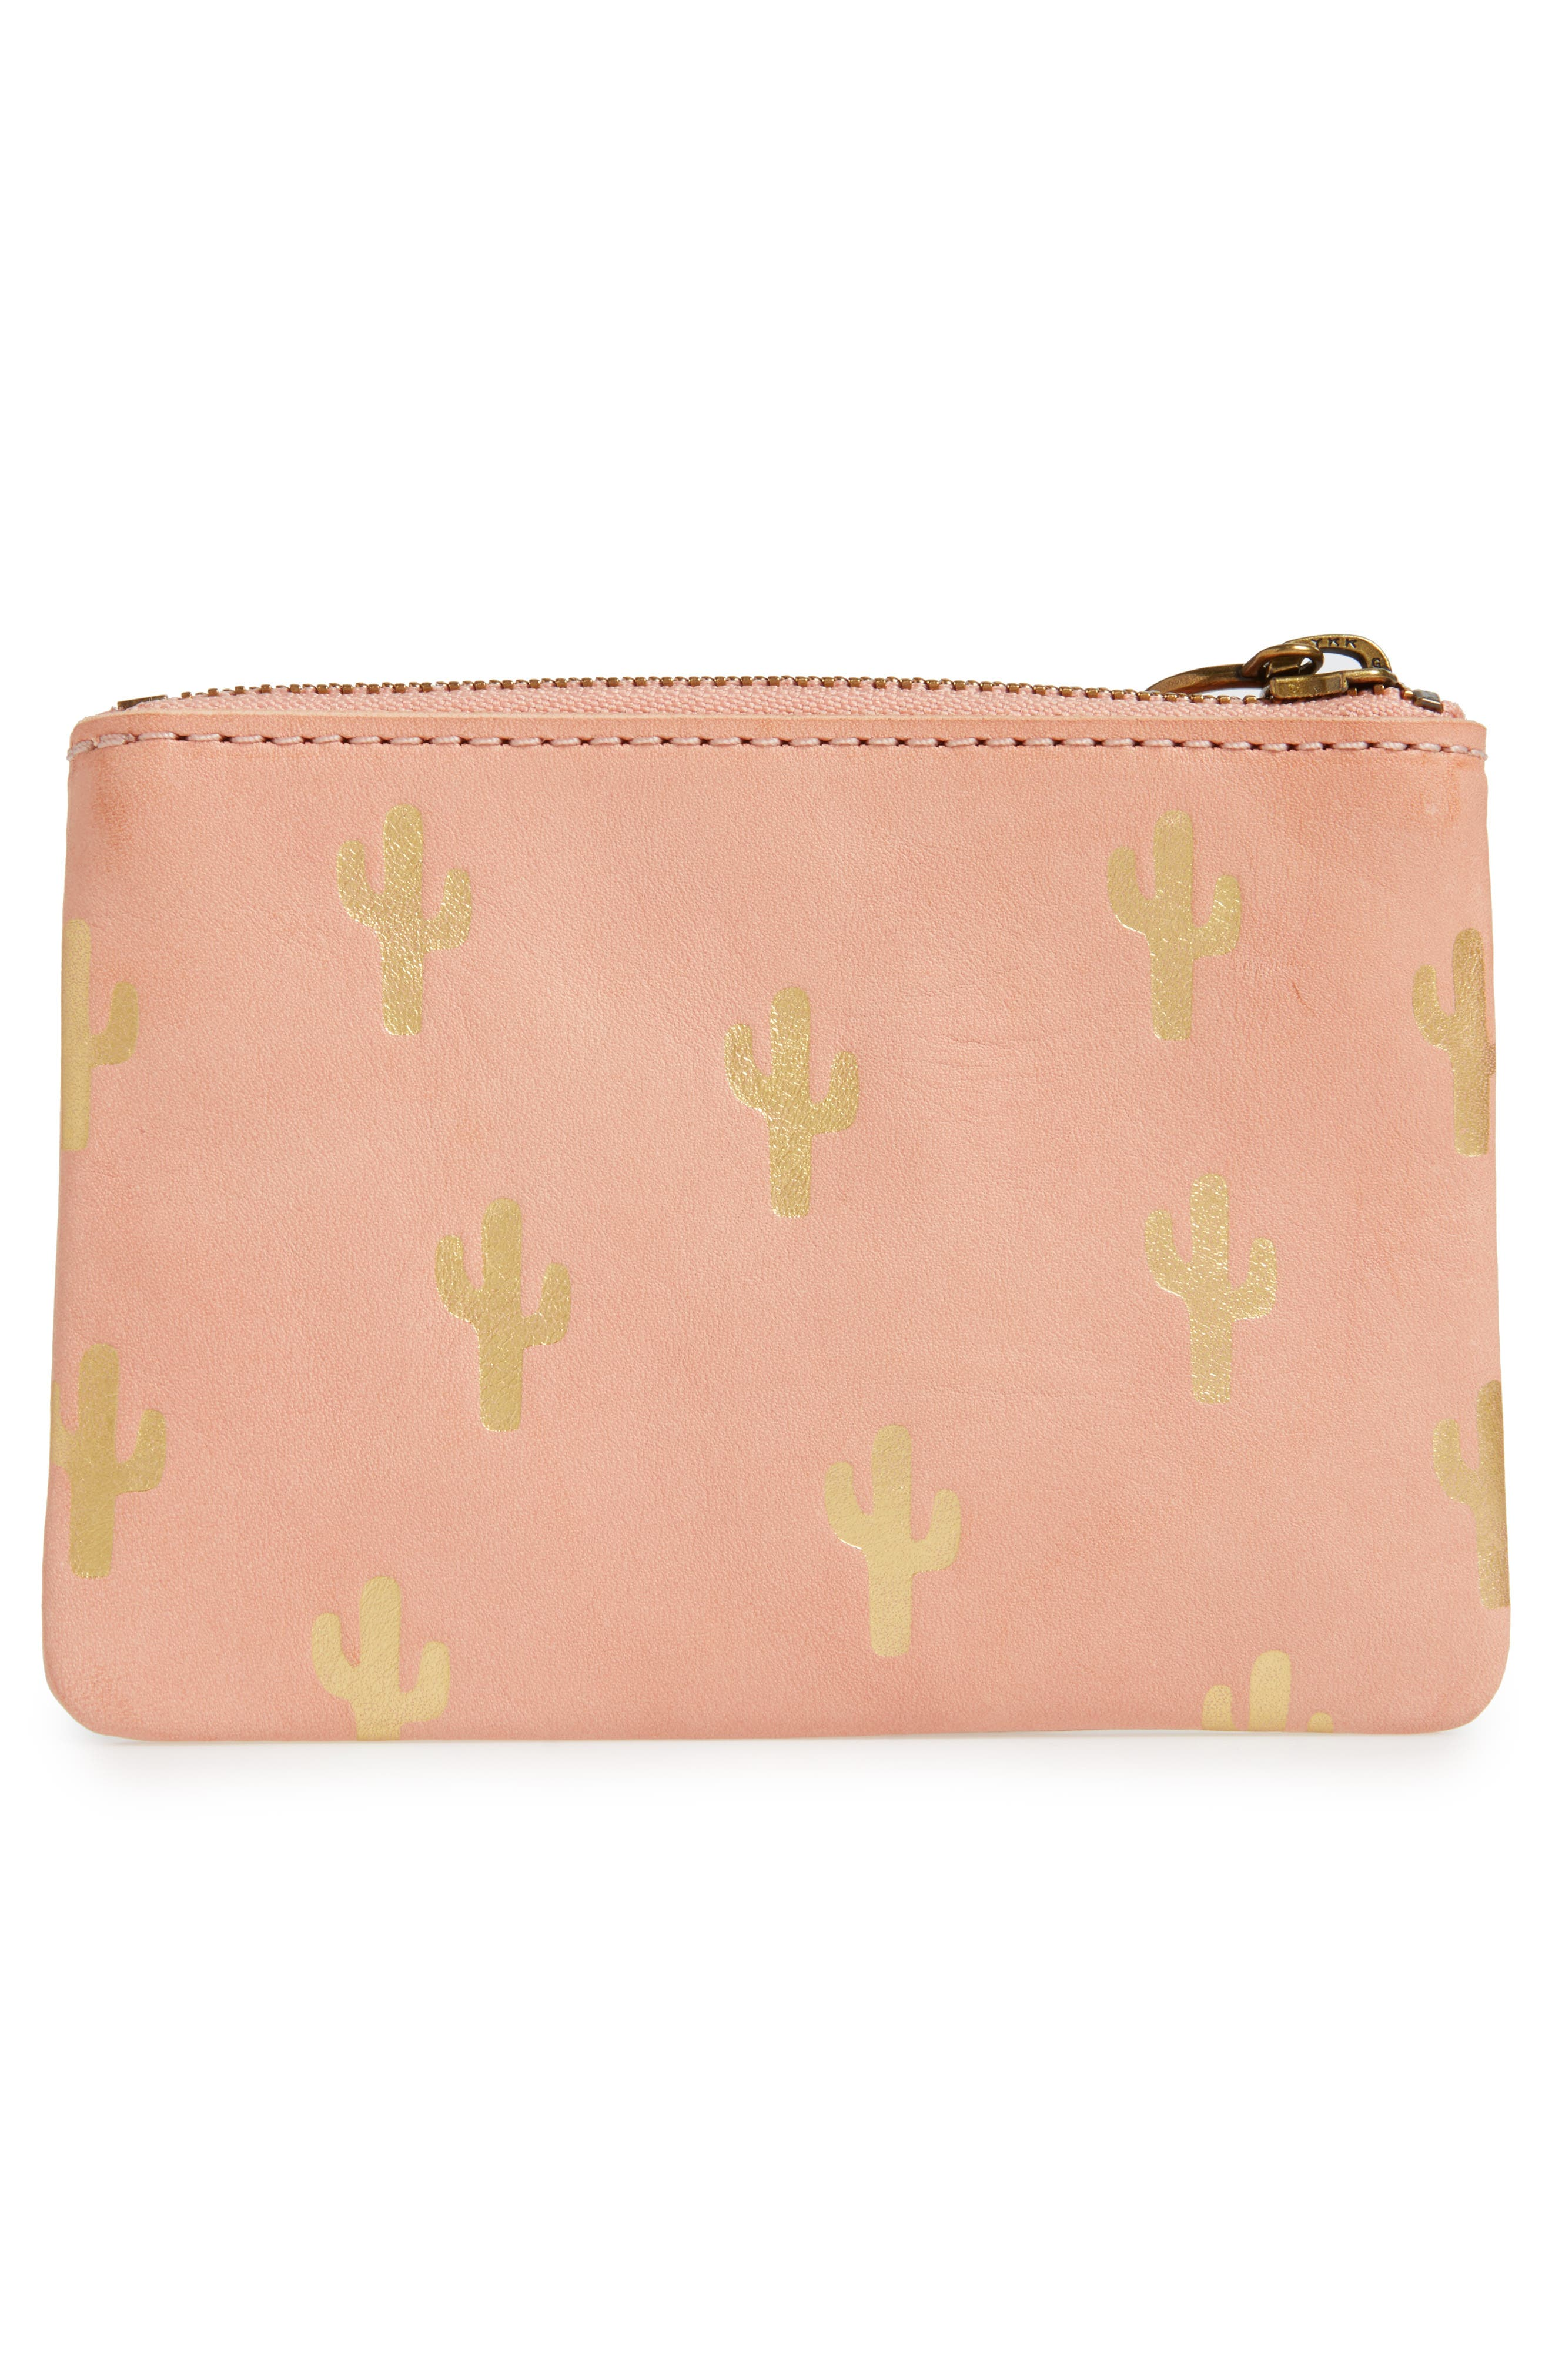 The Leather Pouch Wallet: Embossed Cactus Edition,                             Alternate thumbnail 3, color,                             Petal Pink